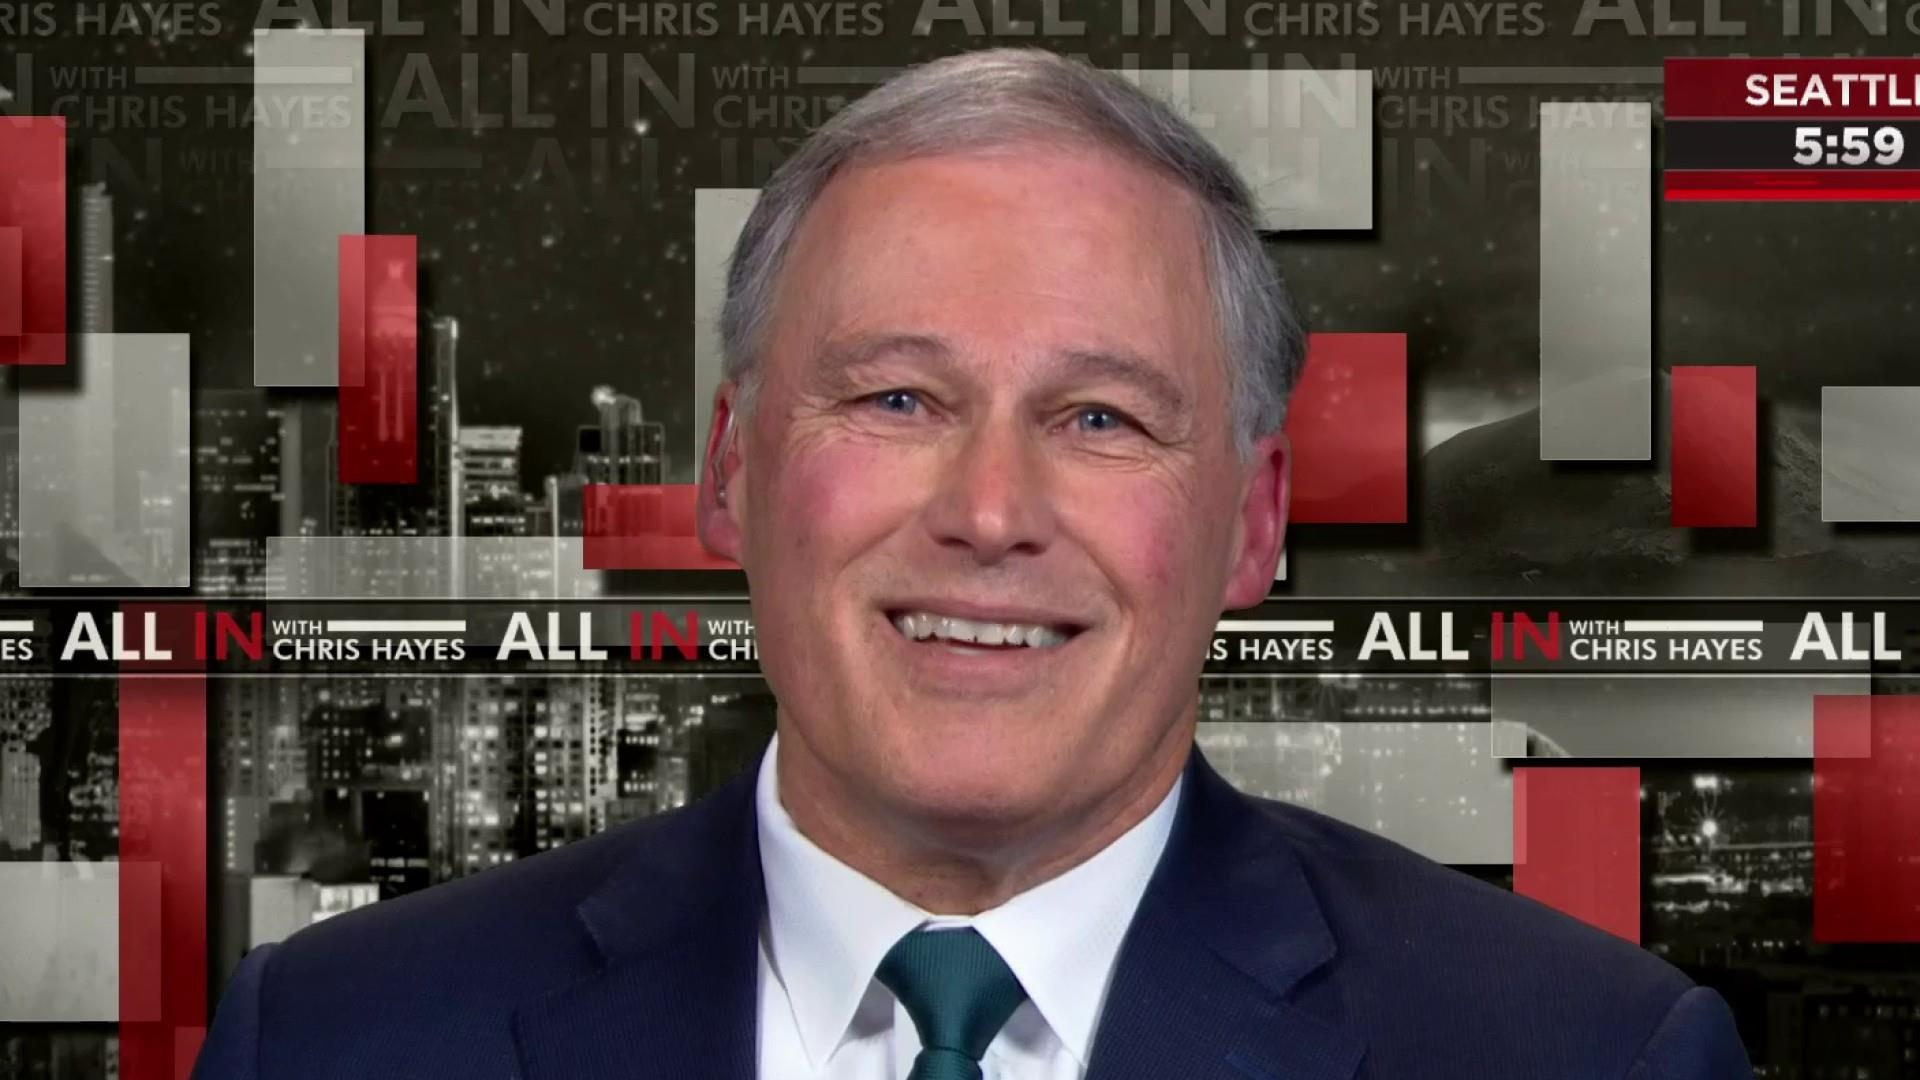 Inslee on his top priority for presidential run: climate